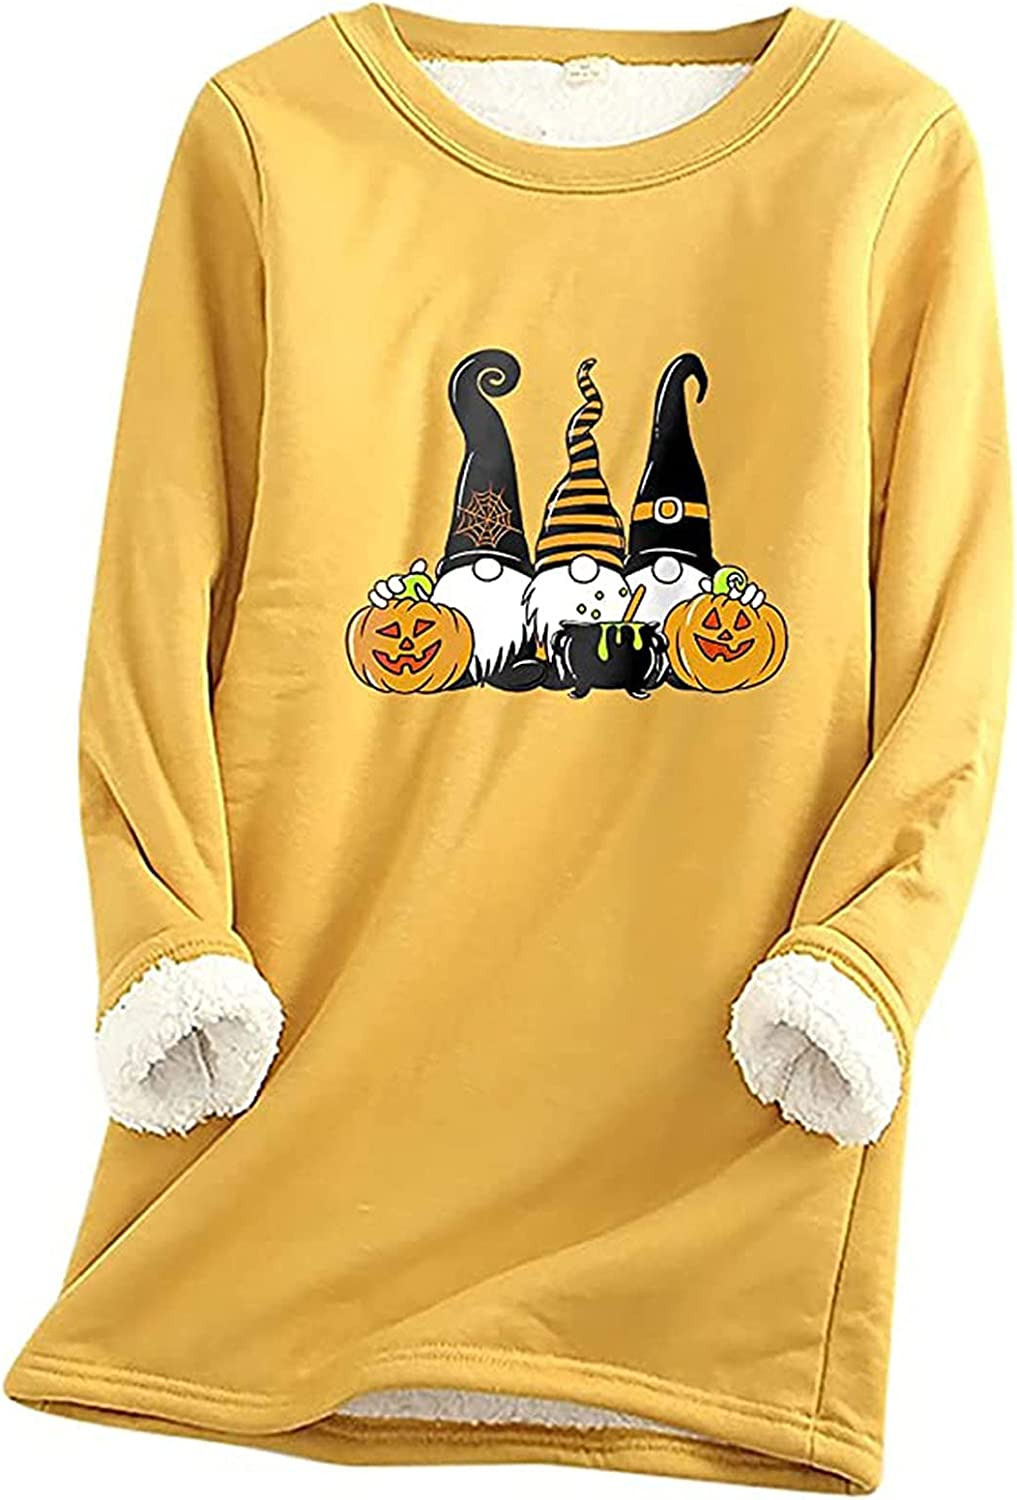 Womens Winter Shirts Fleece Lined Thermal Underwear Halloween Gnomes Pullover Tops Casual Baselayer Undershirt Blouse